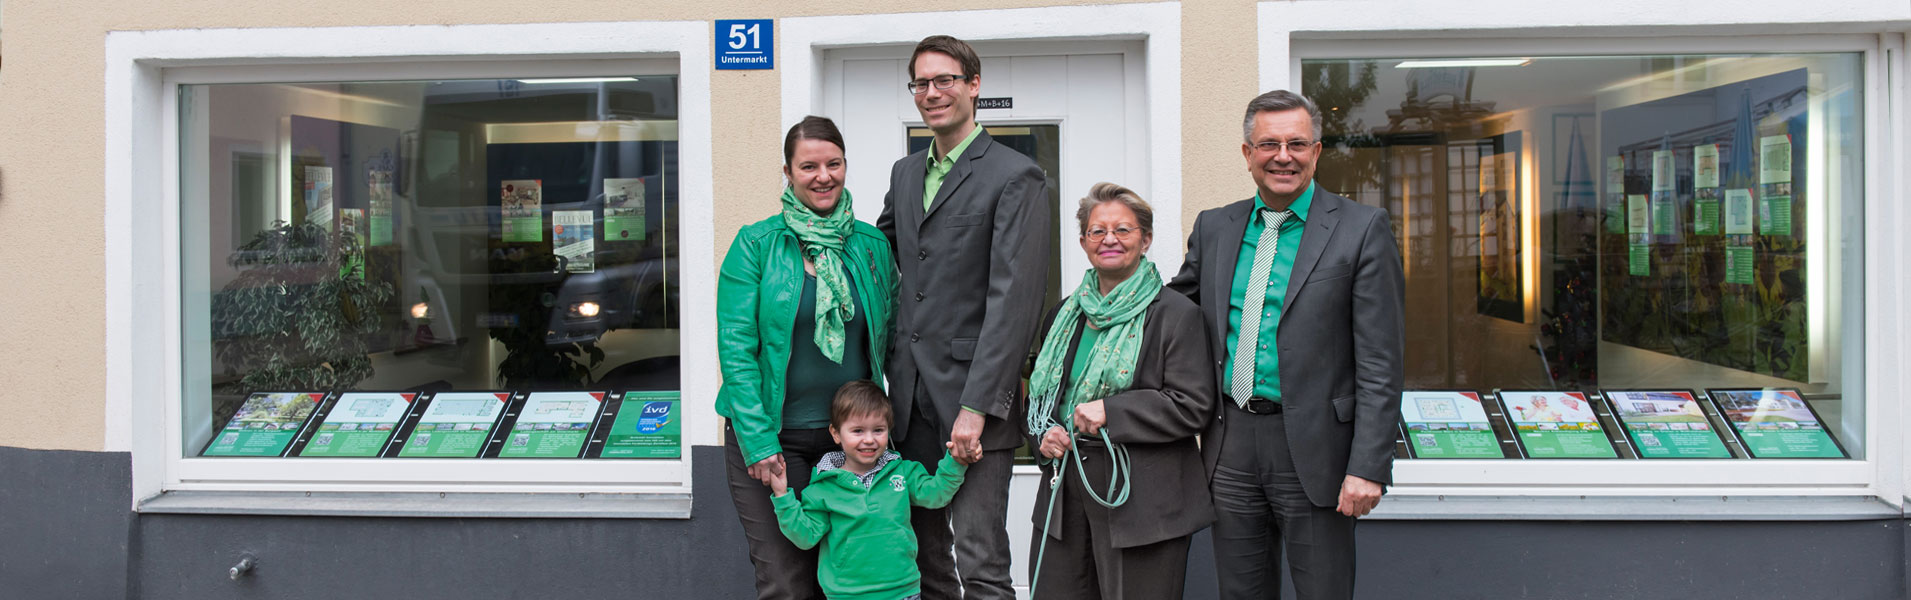 Groebmair Immobilien Team